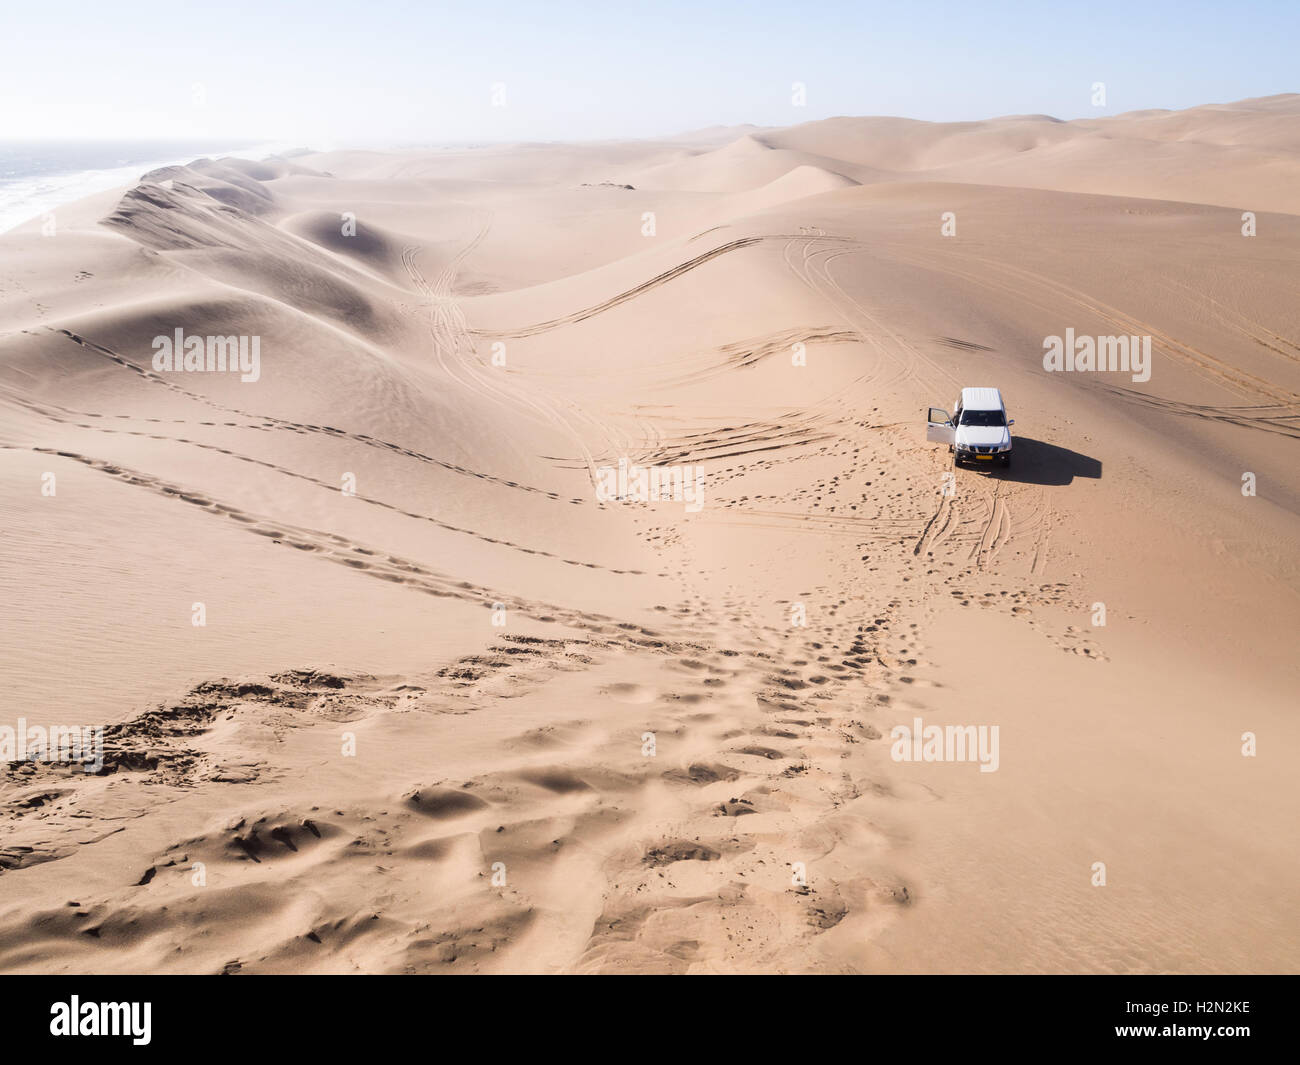 A four by four car on the dunes of the Namib Desert in Sandwich Harbour, Namibia. Horizontal orientation, wide angle. - Stock Image